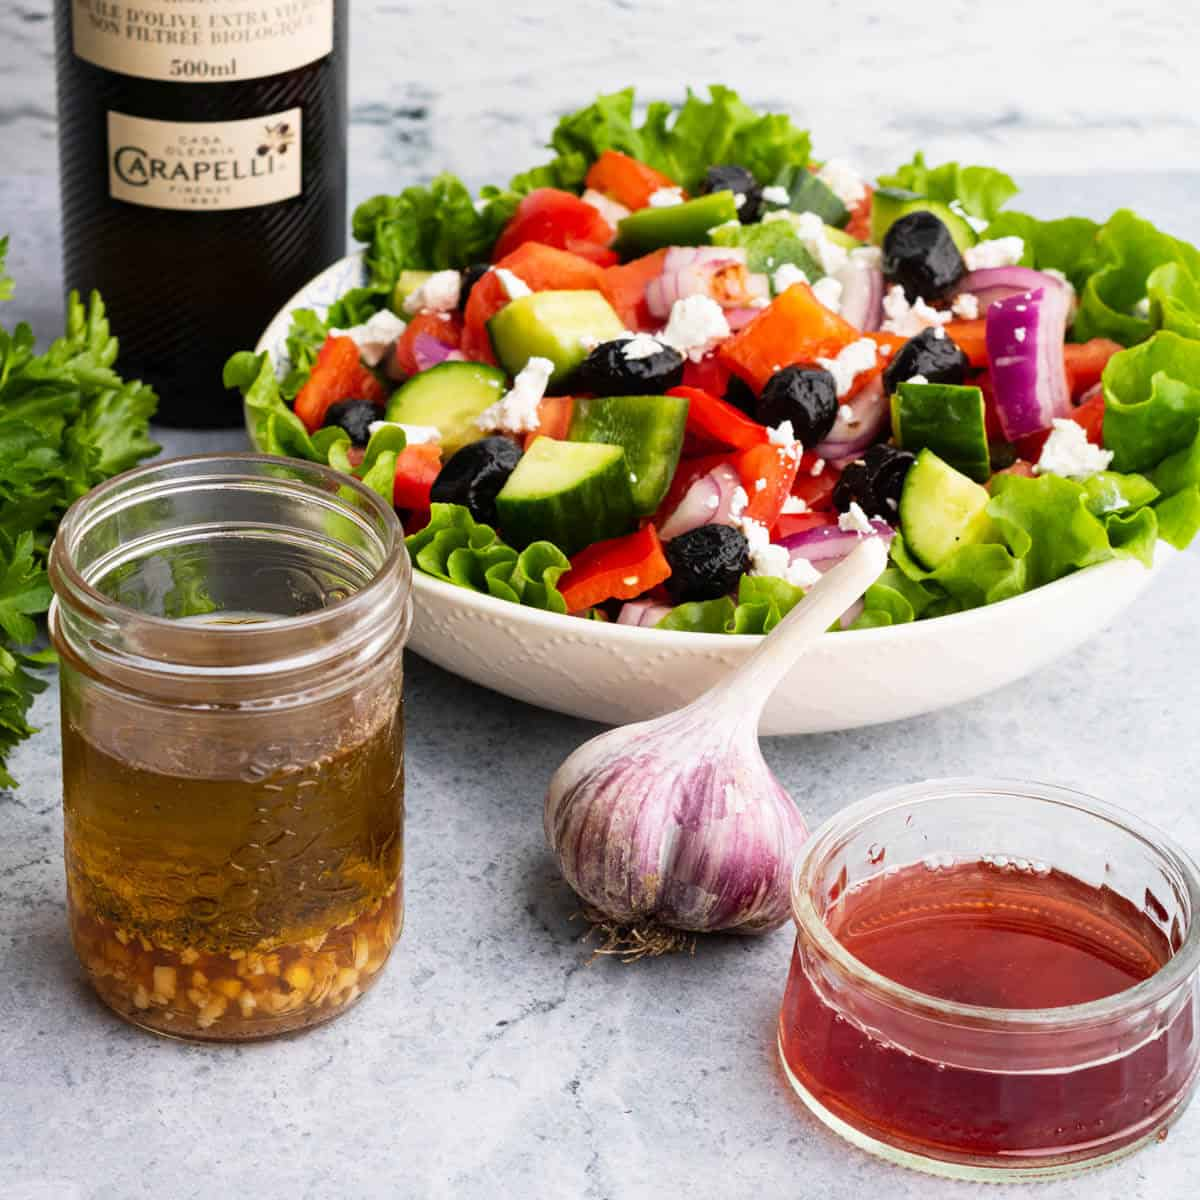 A salad surrounded by red wine dressing ingredients.